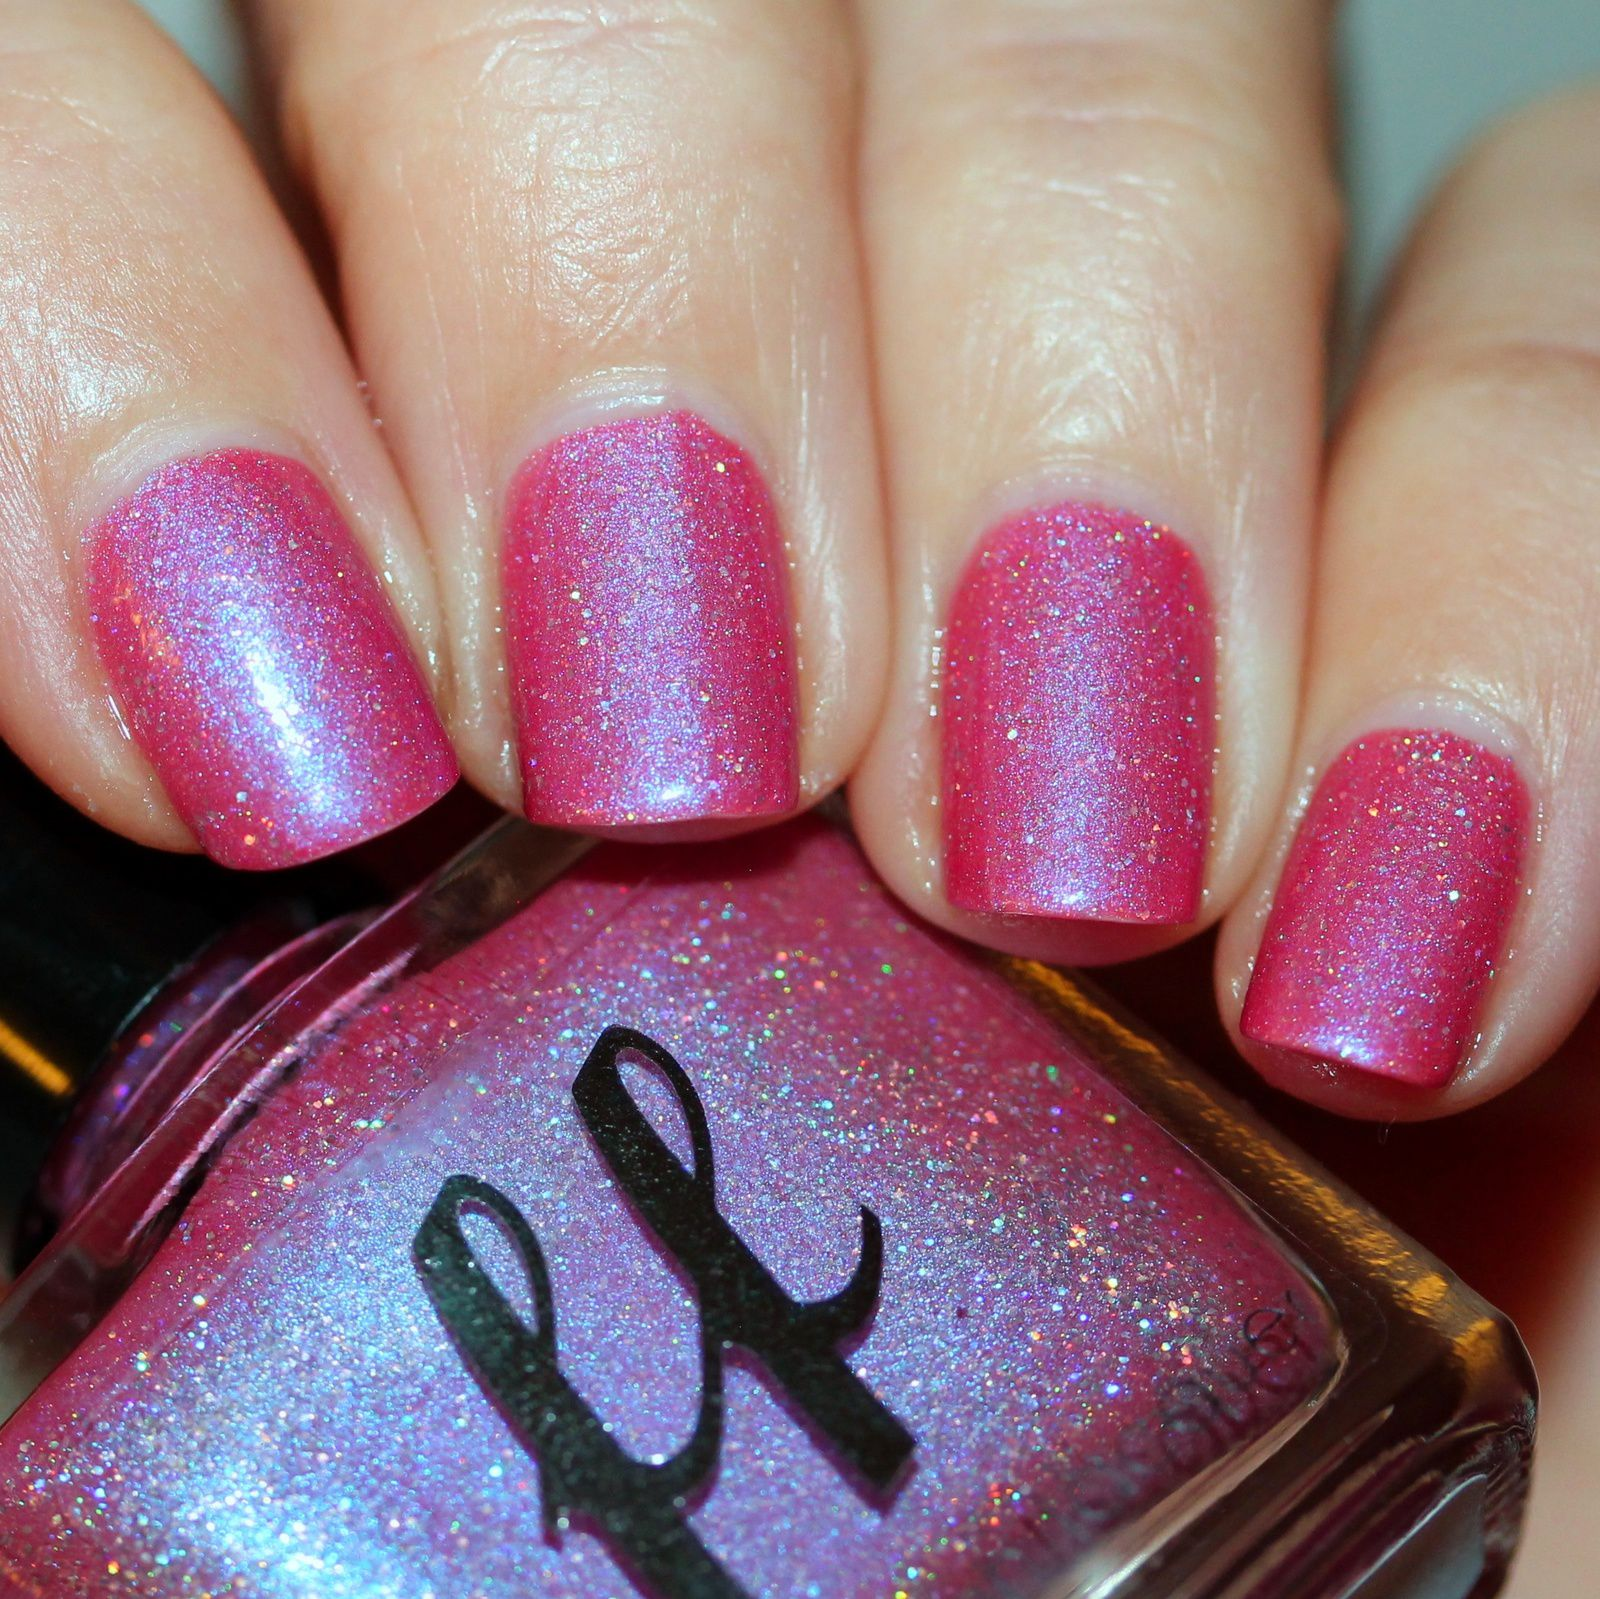 Essie Protein Base Coat / Femme Fatale Cosmetics Dawn of the Day / Lilypad Lacquer Crystal Clear Top Coat